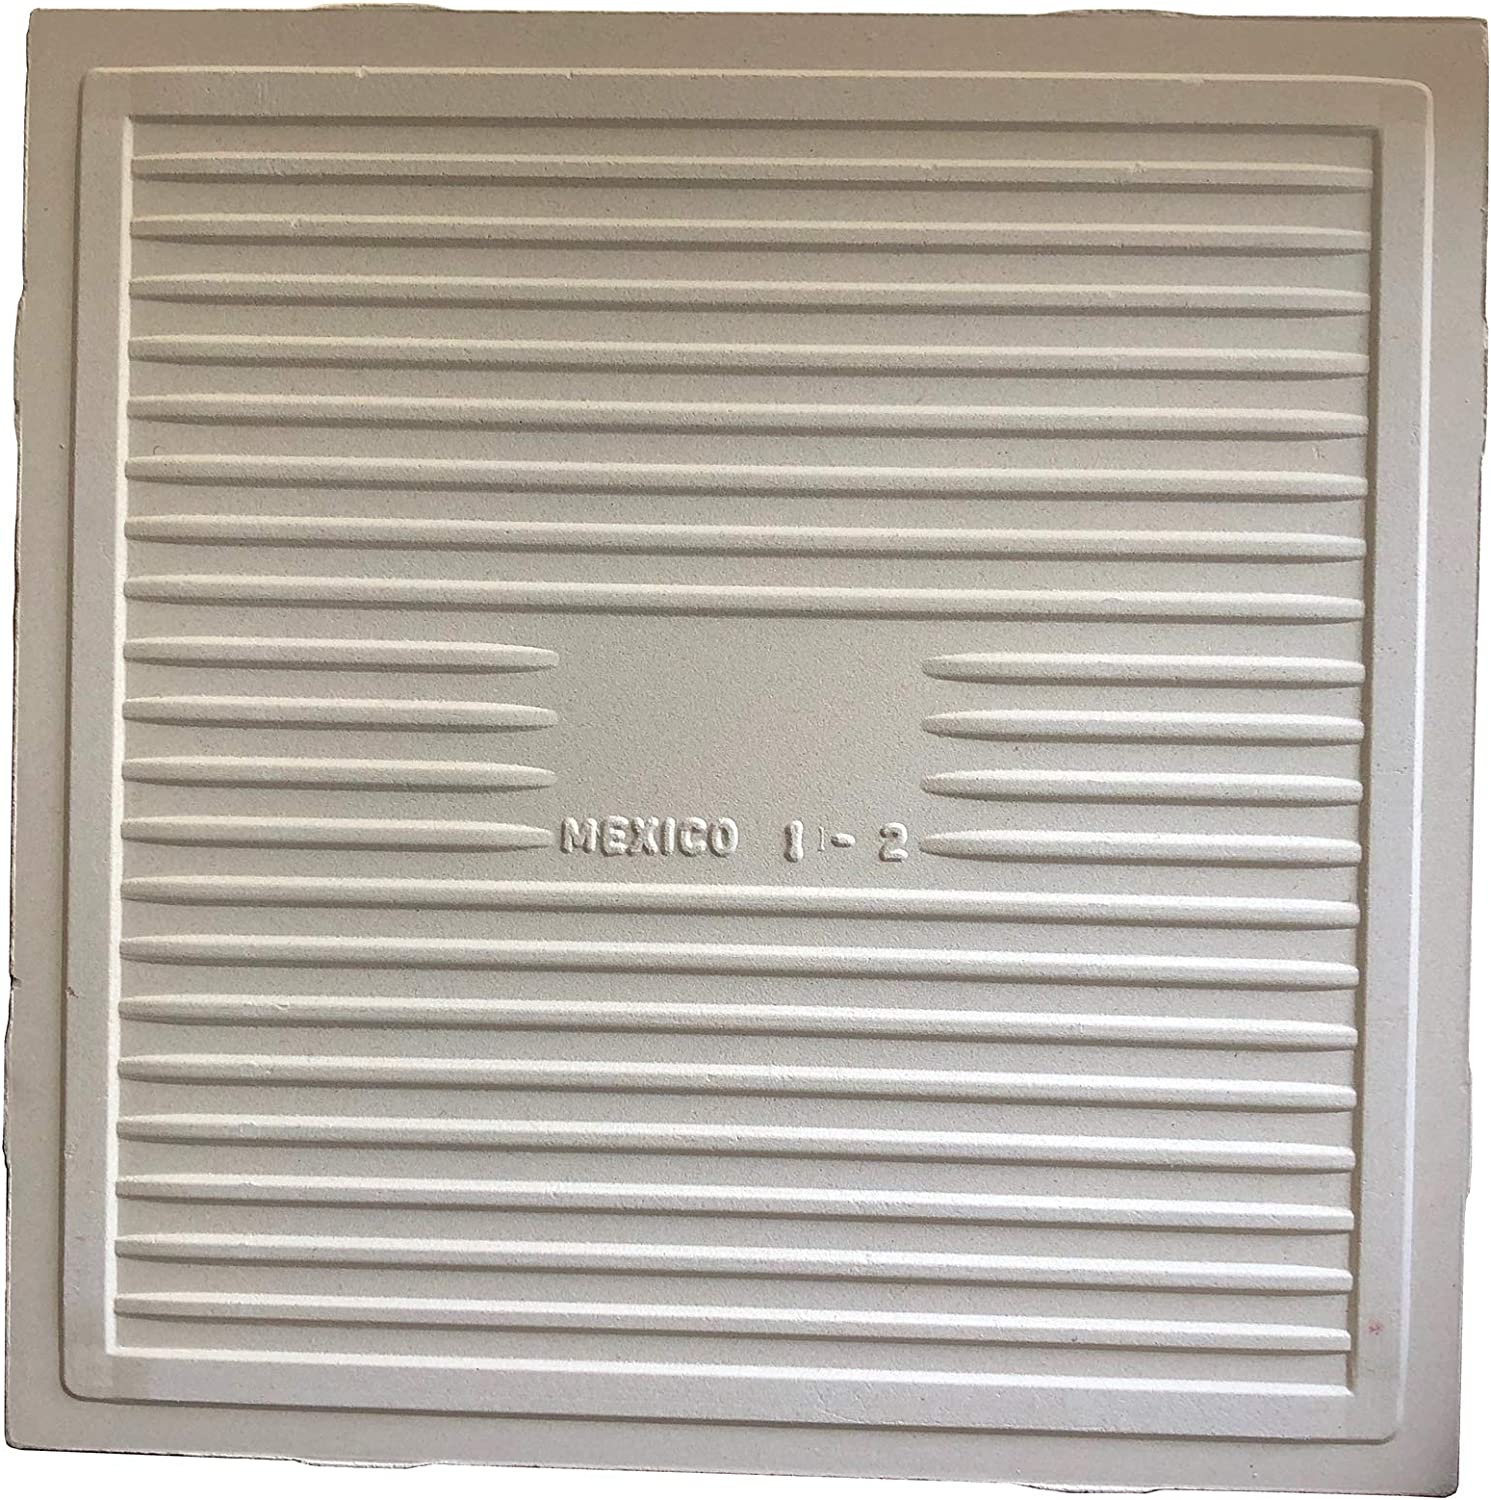 6, 5 White Bisque Blank White Ceramic Tiles Project Pack Unfinished Square Art Craft Ready to Create